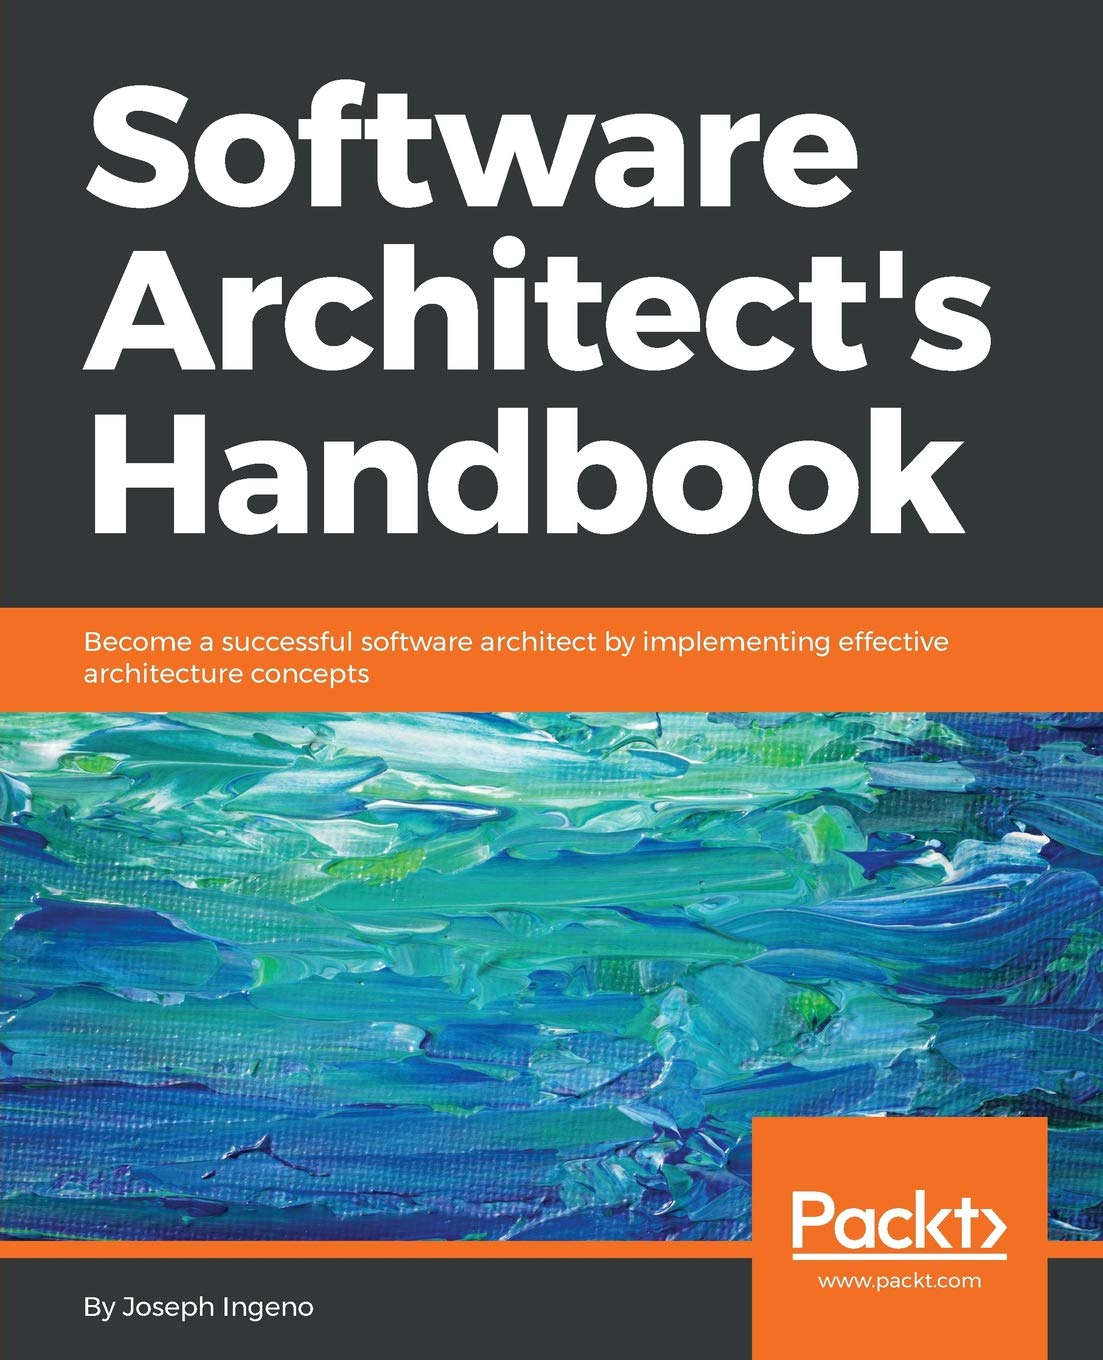 Software Architect's Handbook: Become a successful software